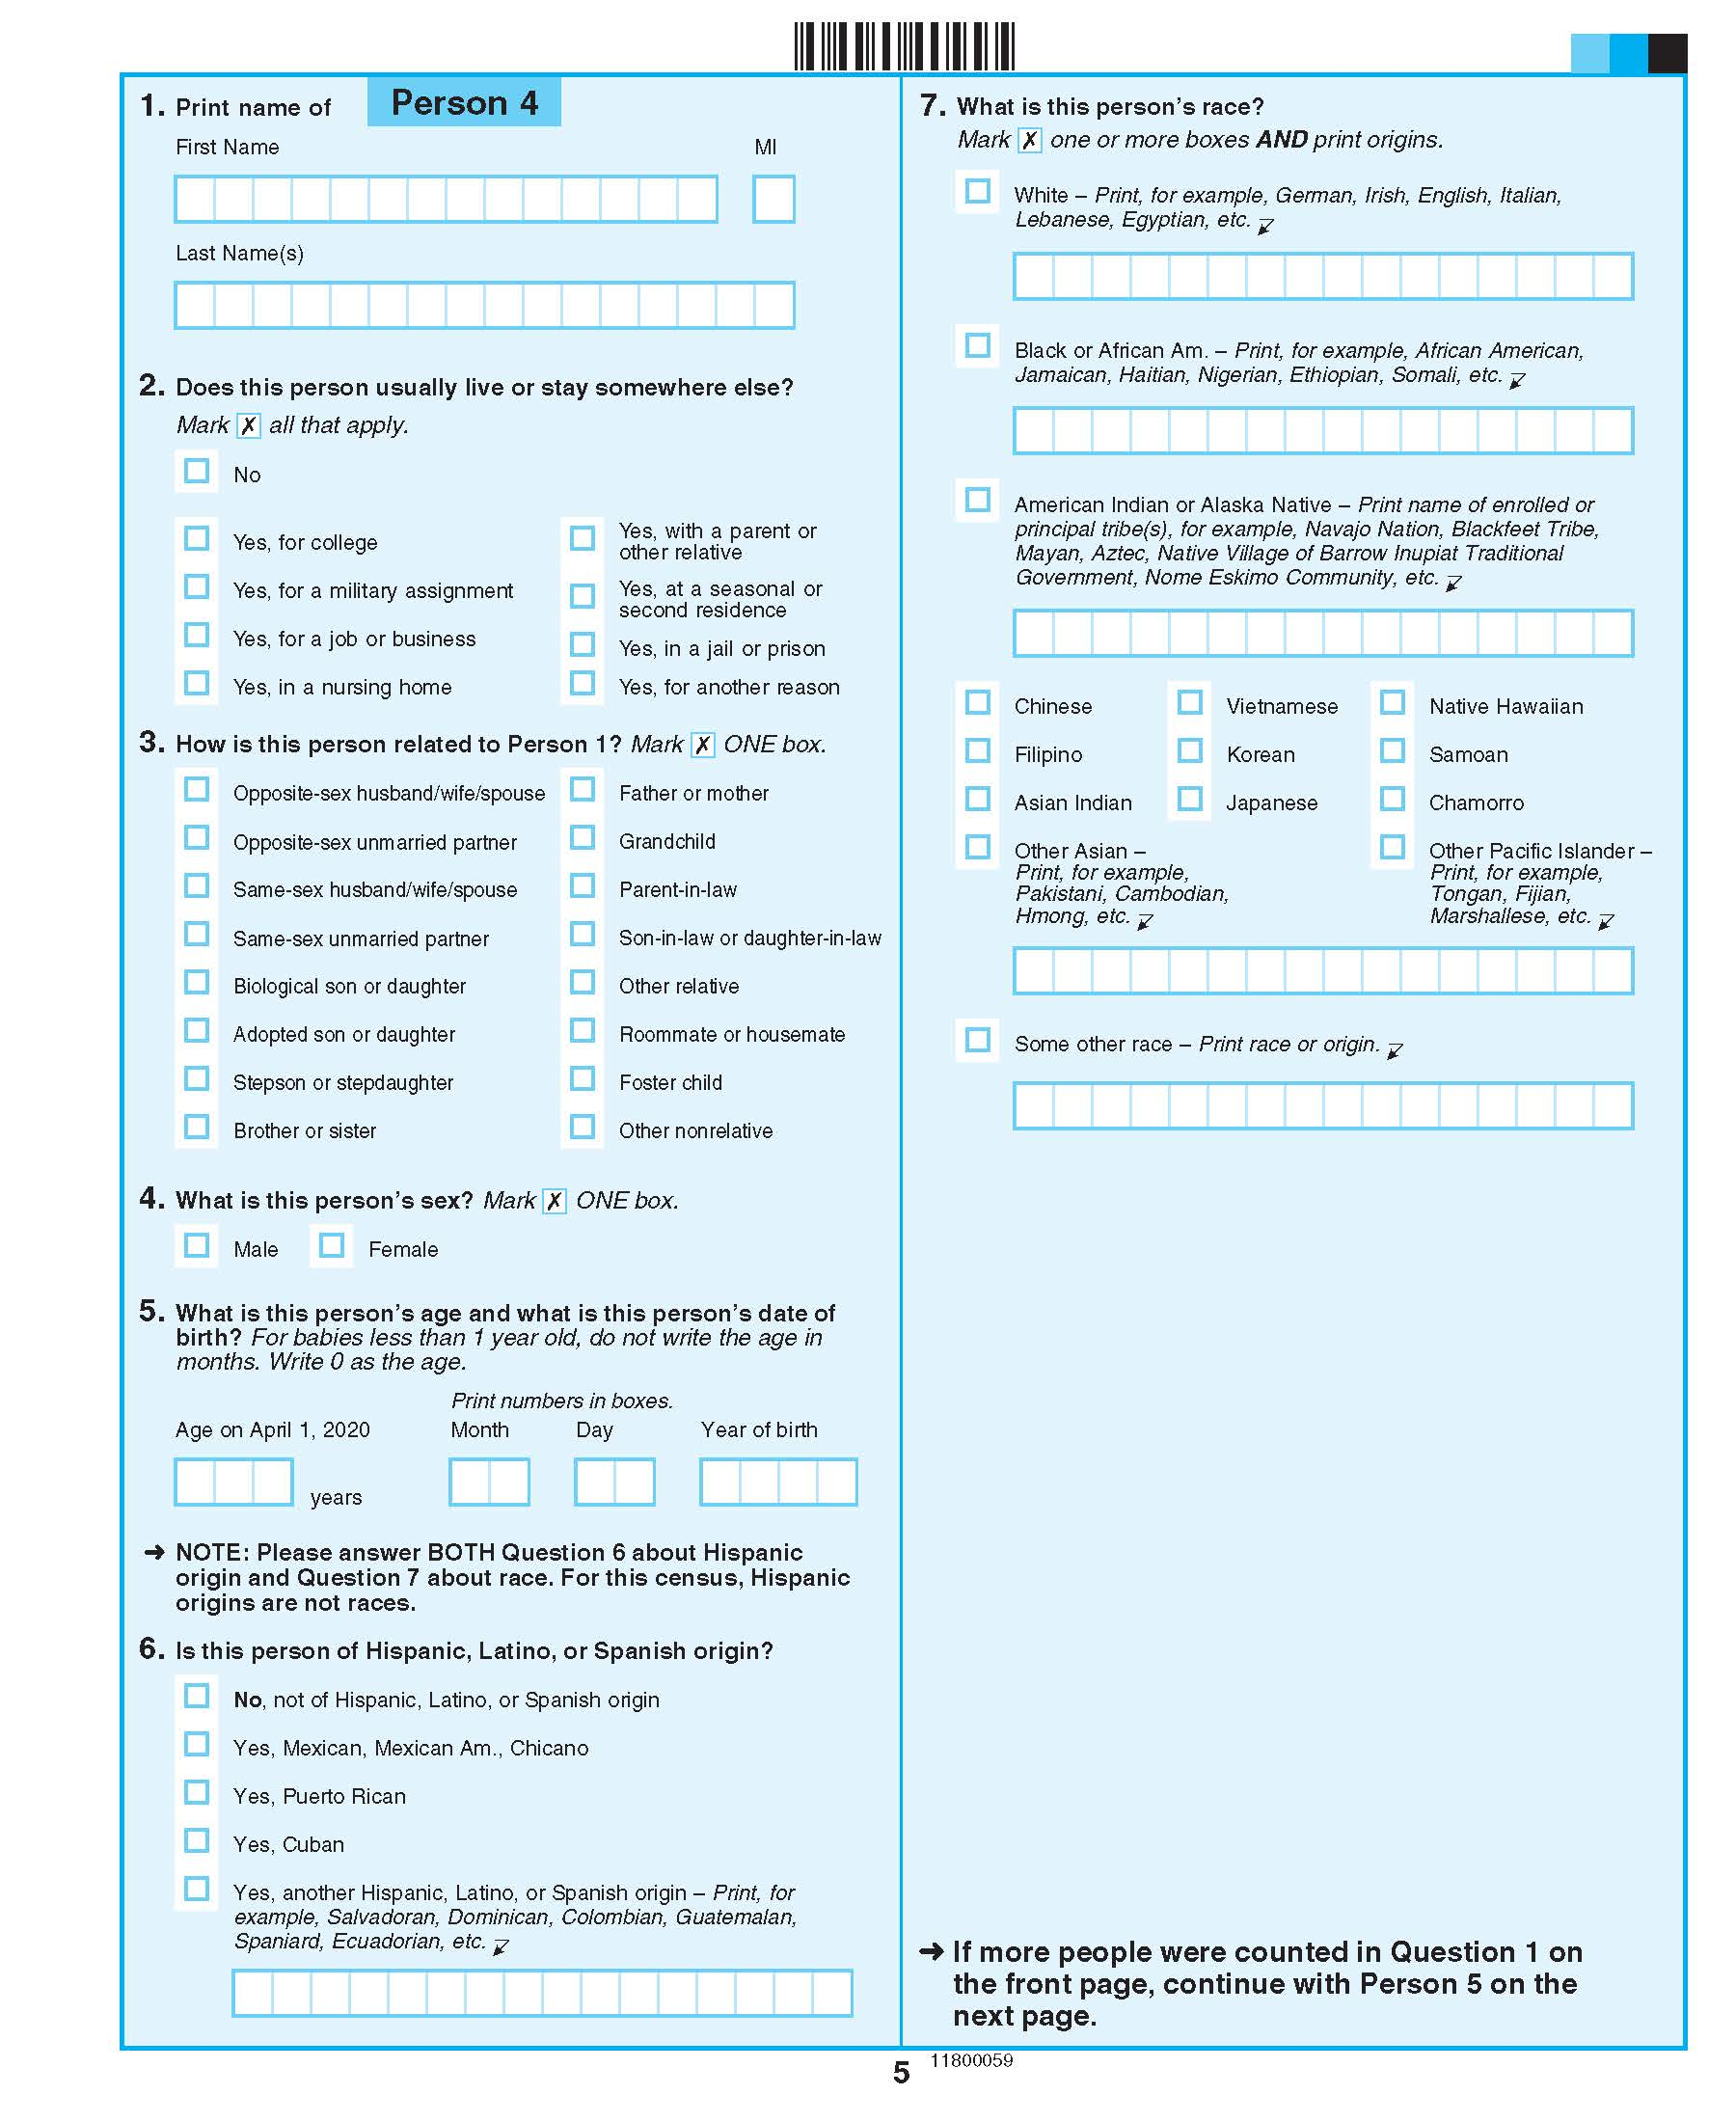 2020 Census Questionnaire_Page_5